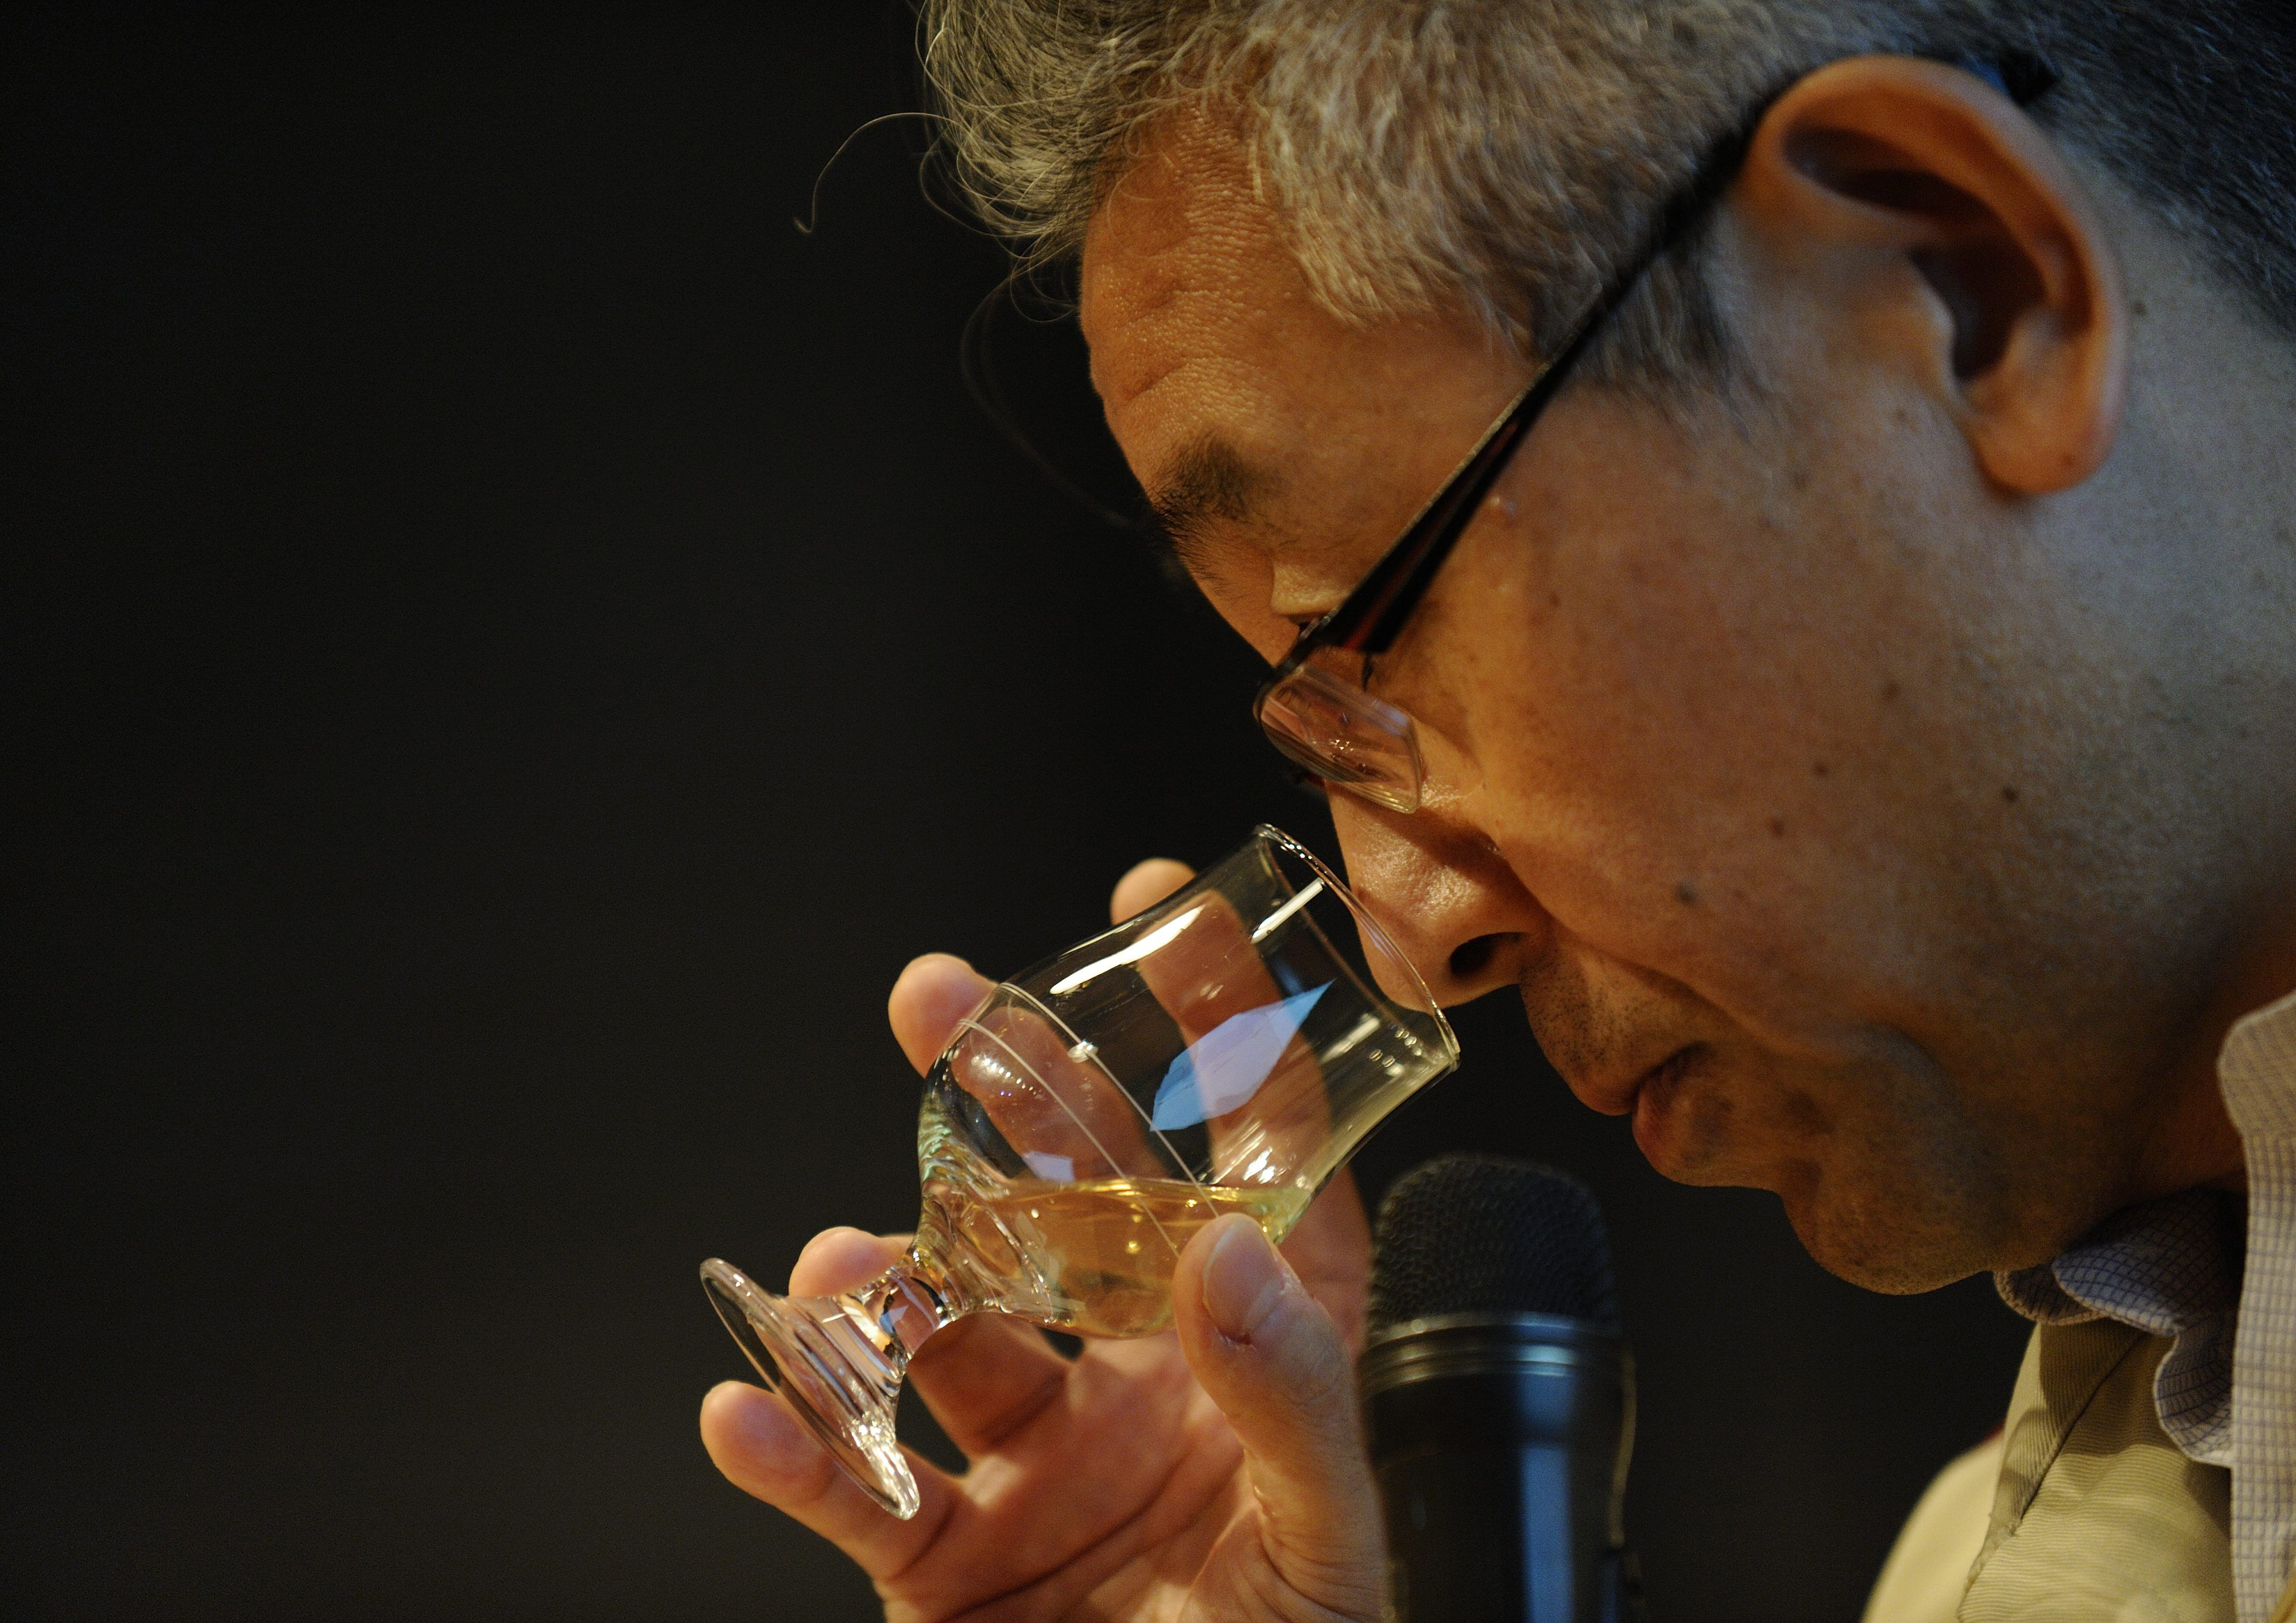 Japanese brewer Suntory to hold off investing in China amid trade war